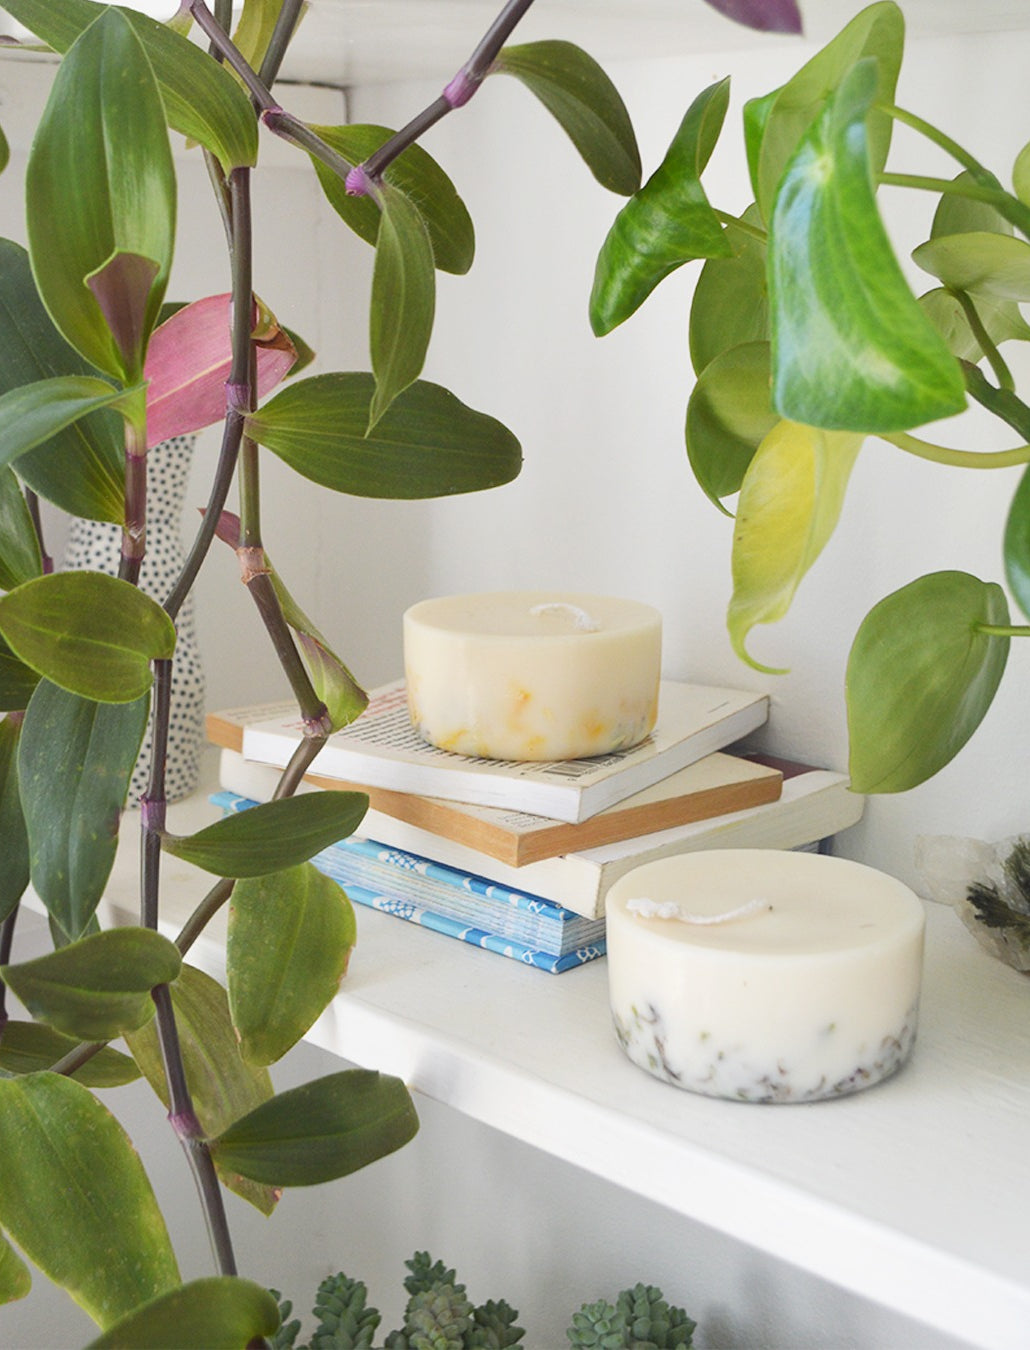 sustainable candle with essential oil in terracotta container